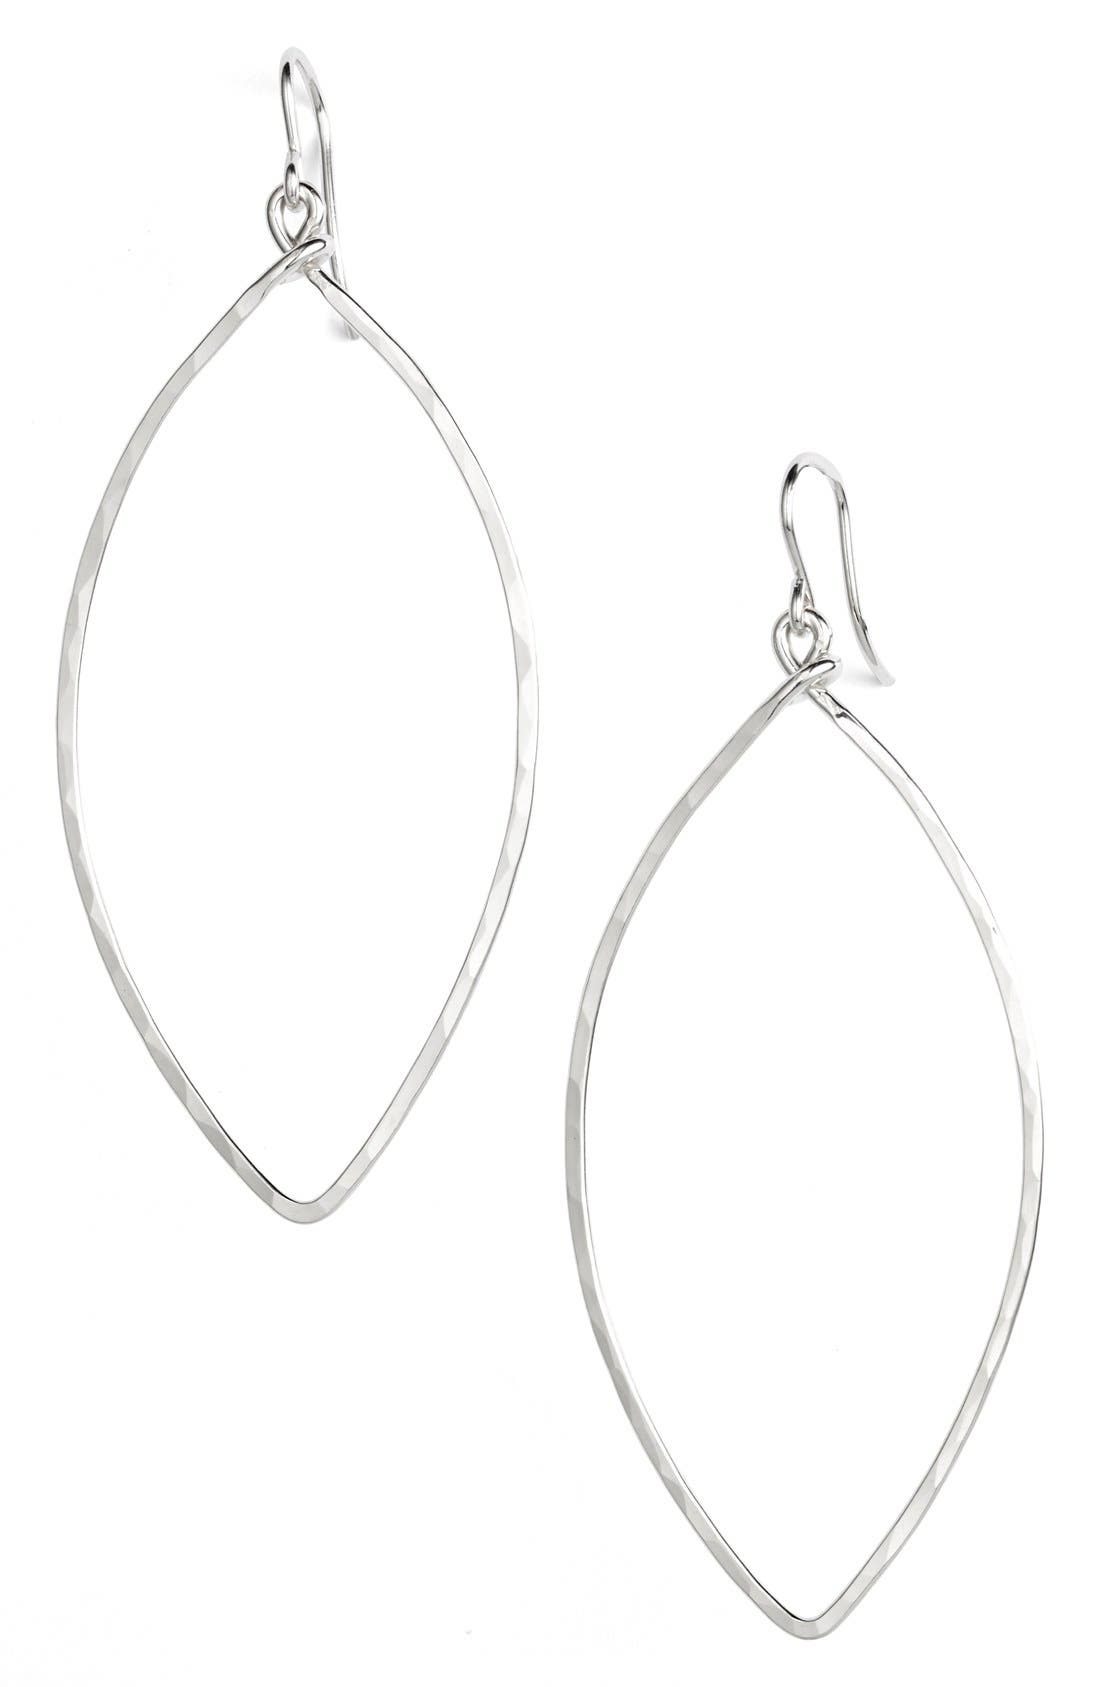 Ija Sterling Silver Oblong Hoop Earrings,                             Main thumbnail 1, color,                             040